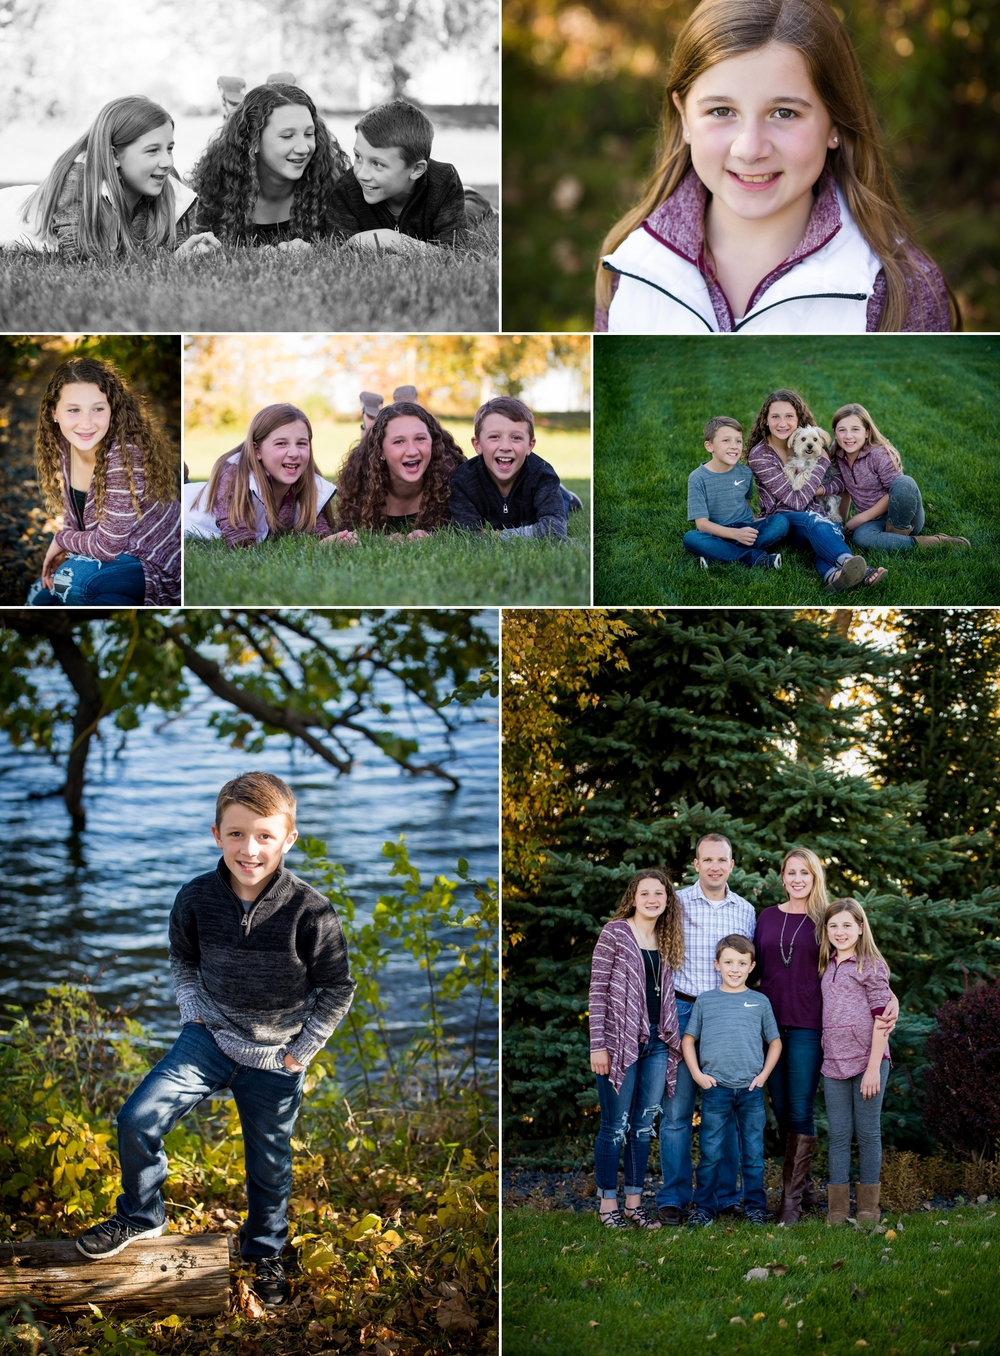 fall-family-photos-in-twin cities-shakopee-prior-lake